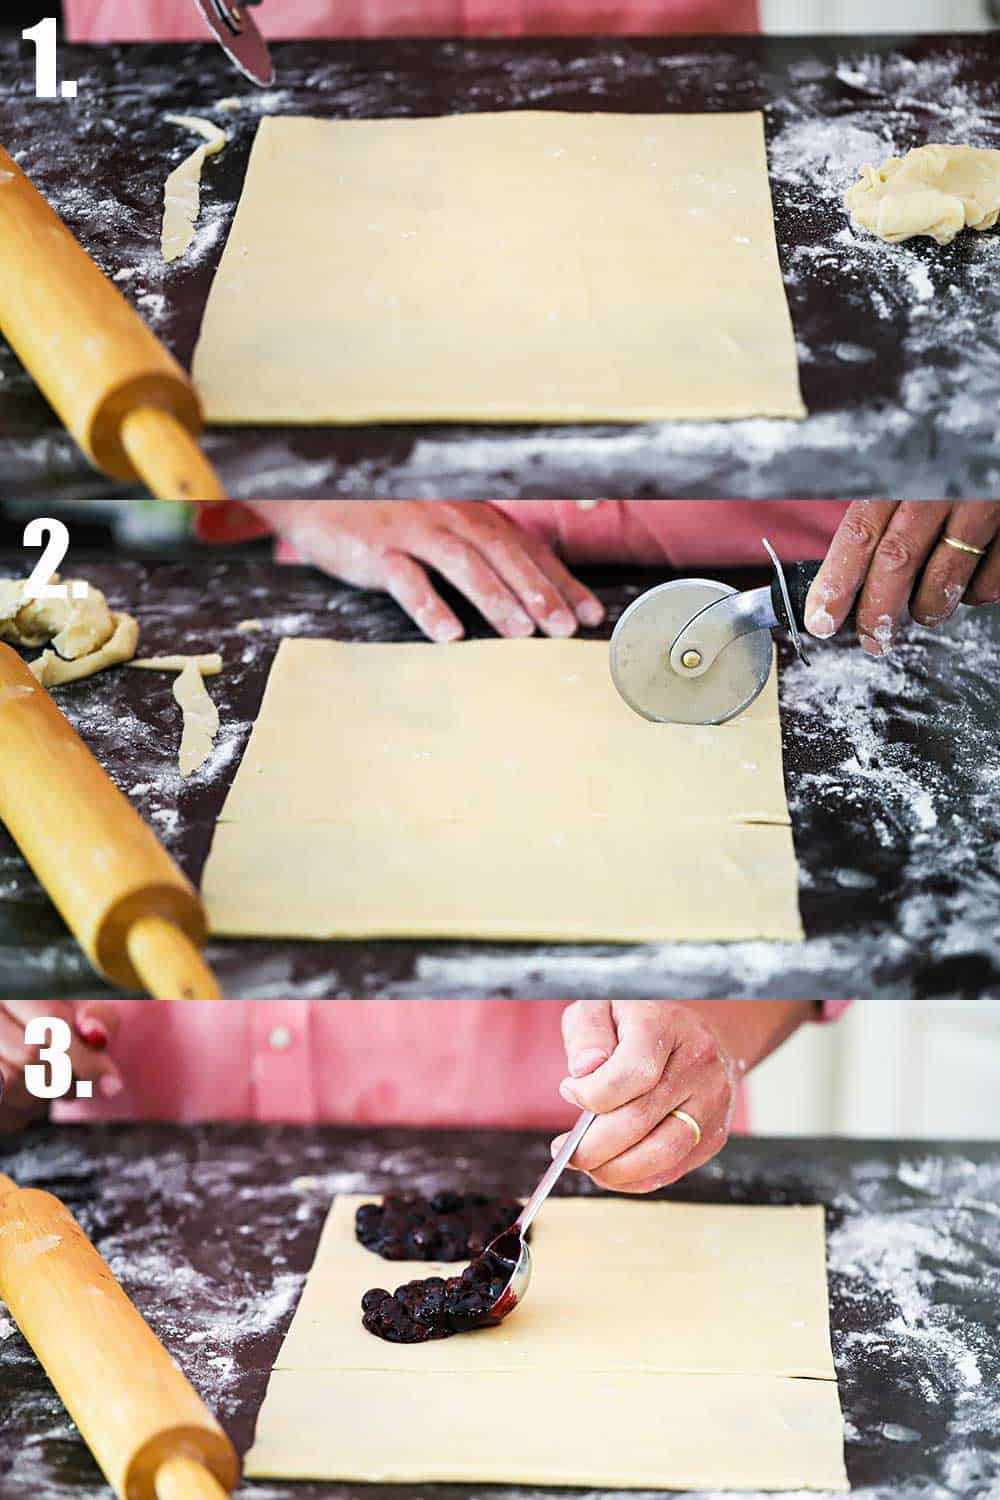 3 stacked images with the top being a large rectangle of dough on a floured black marble countertop, and the middle is a hand using a cookie cutter to cut the dough into the 3rds lengthwise, and the bottom is a hand spoon blueberry filling onto one end of the dough strips.